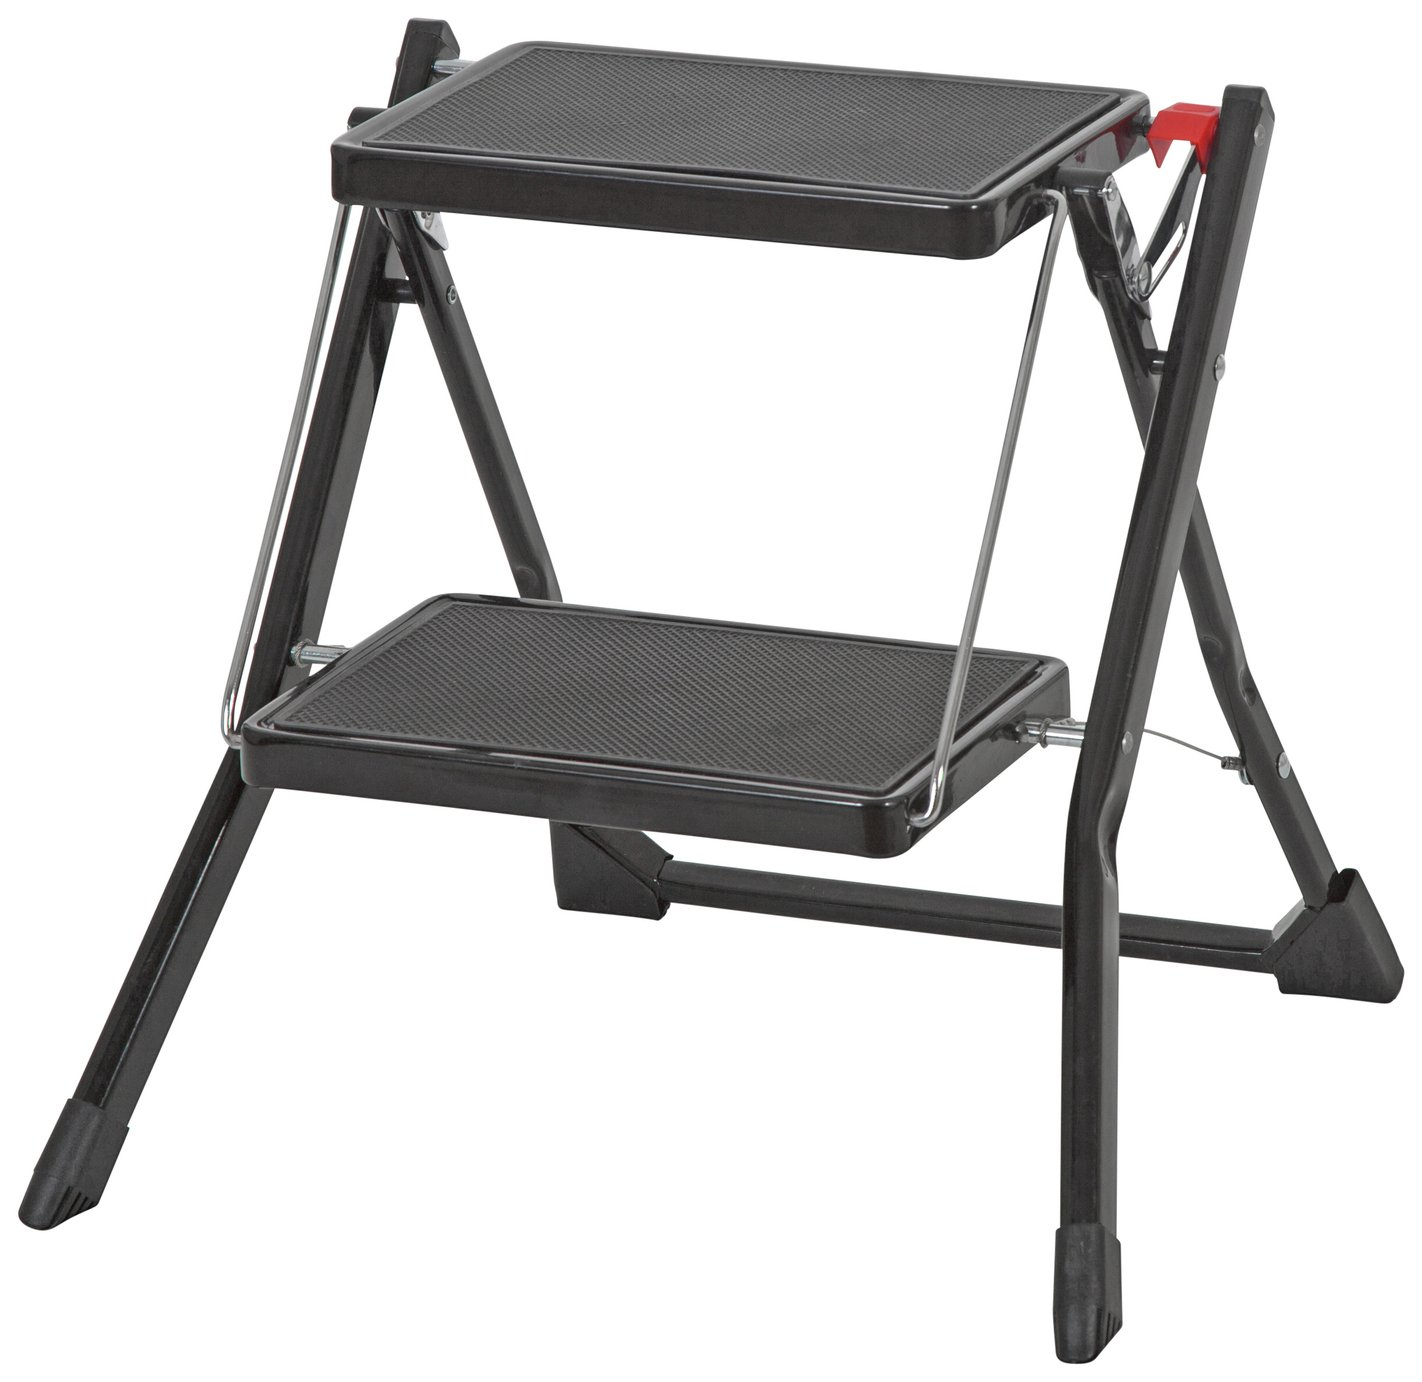 Abru 2 Step Compact Step Stool 2.20m Reach Height*  sc 1 st  Argos : compact step stool - islam-shia.org